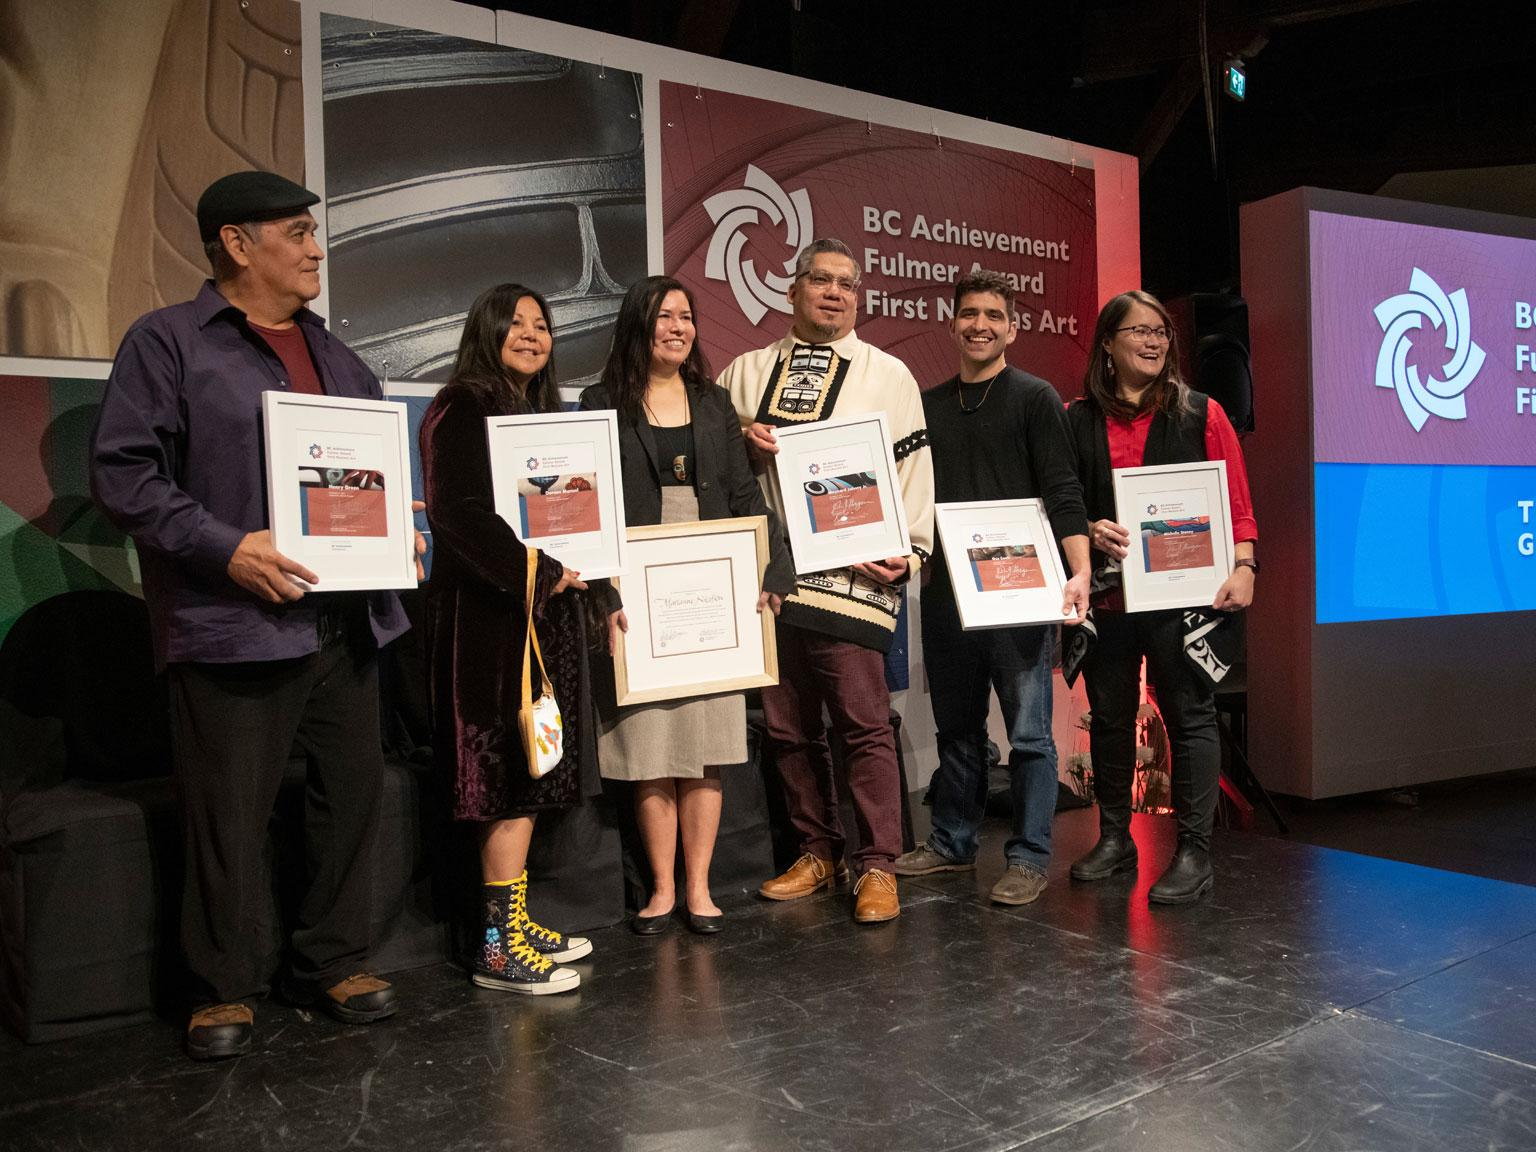 2019 Fulmer Award in First Nations Art Awardees Celebrated